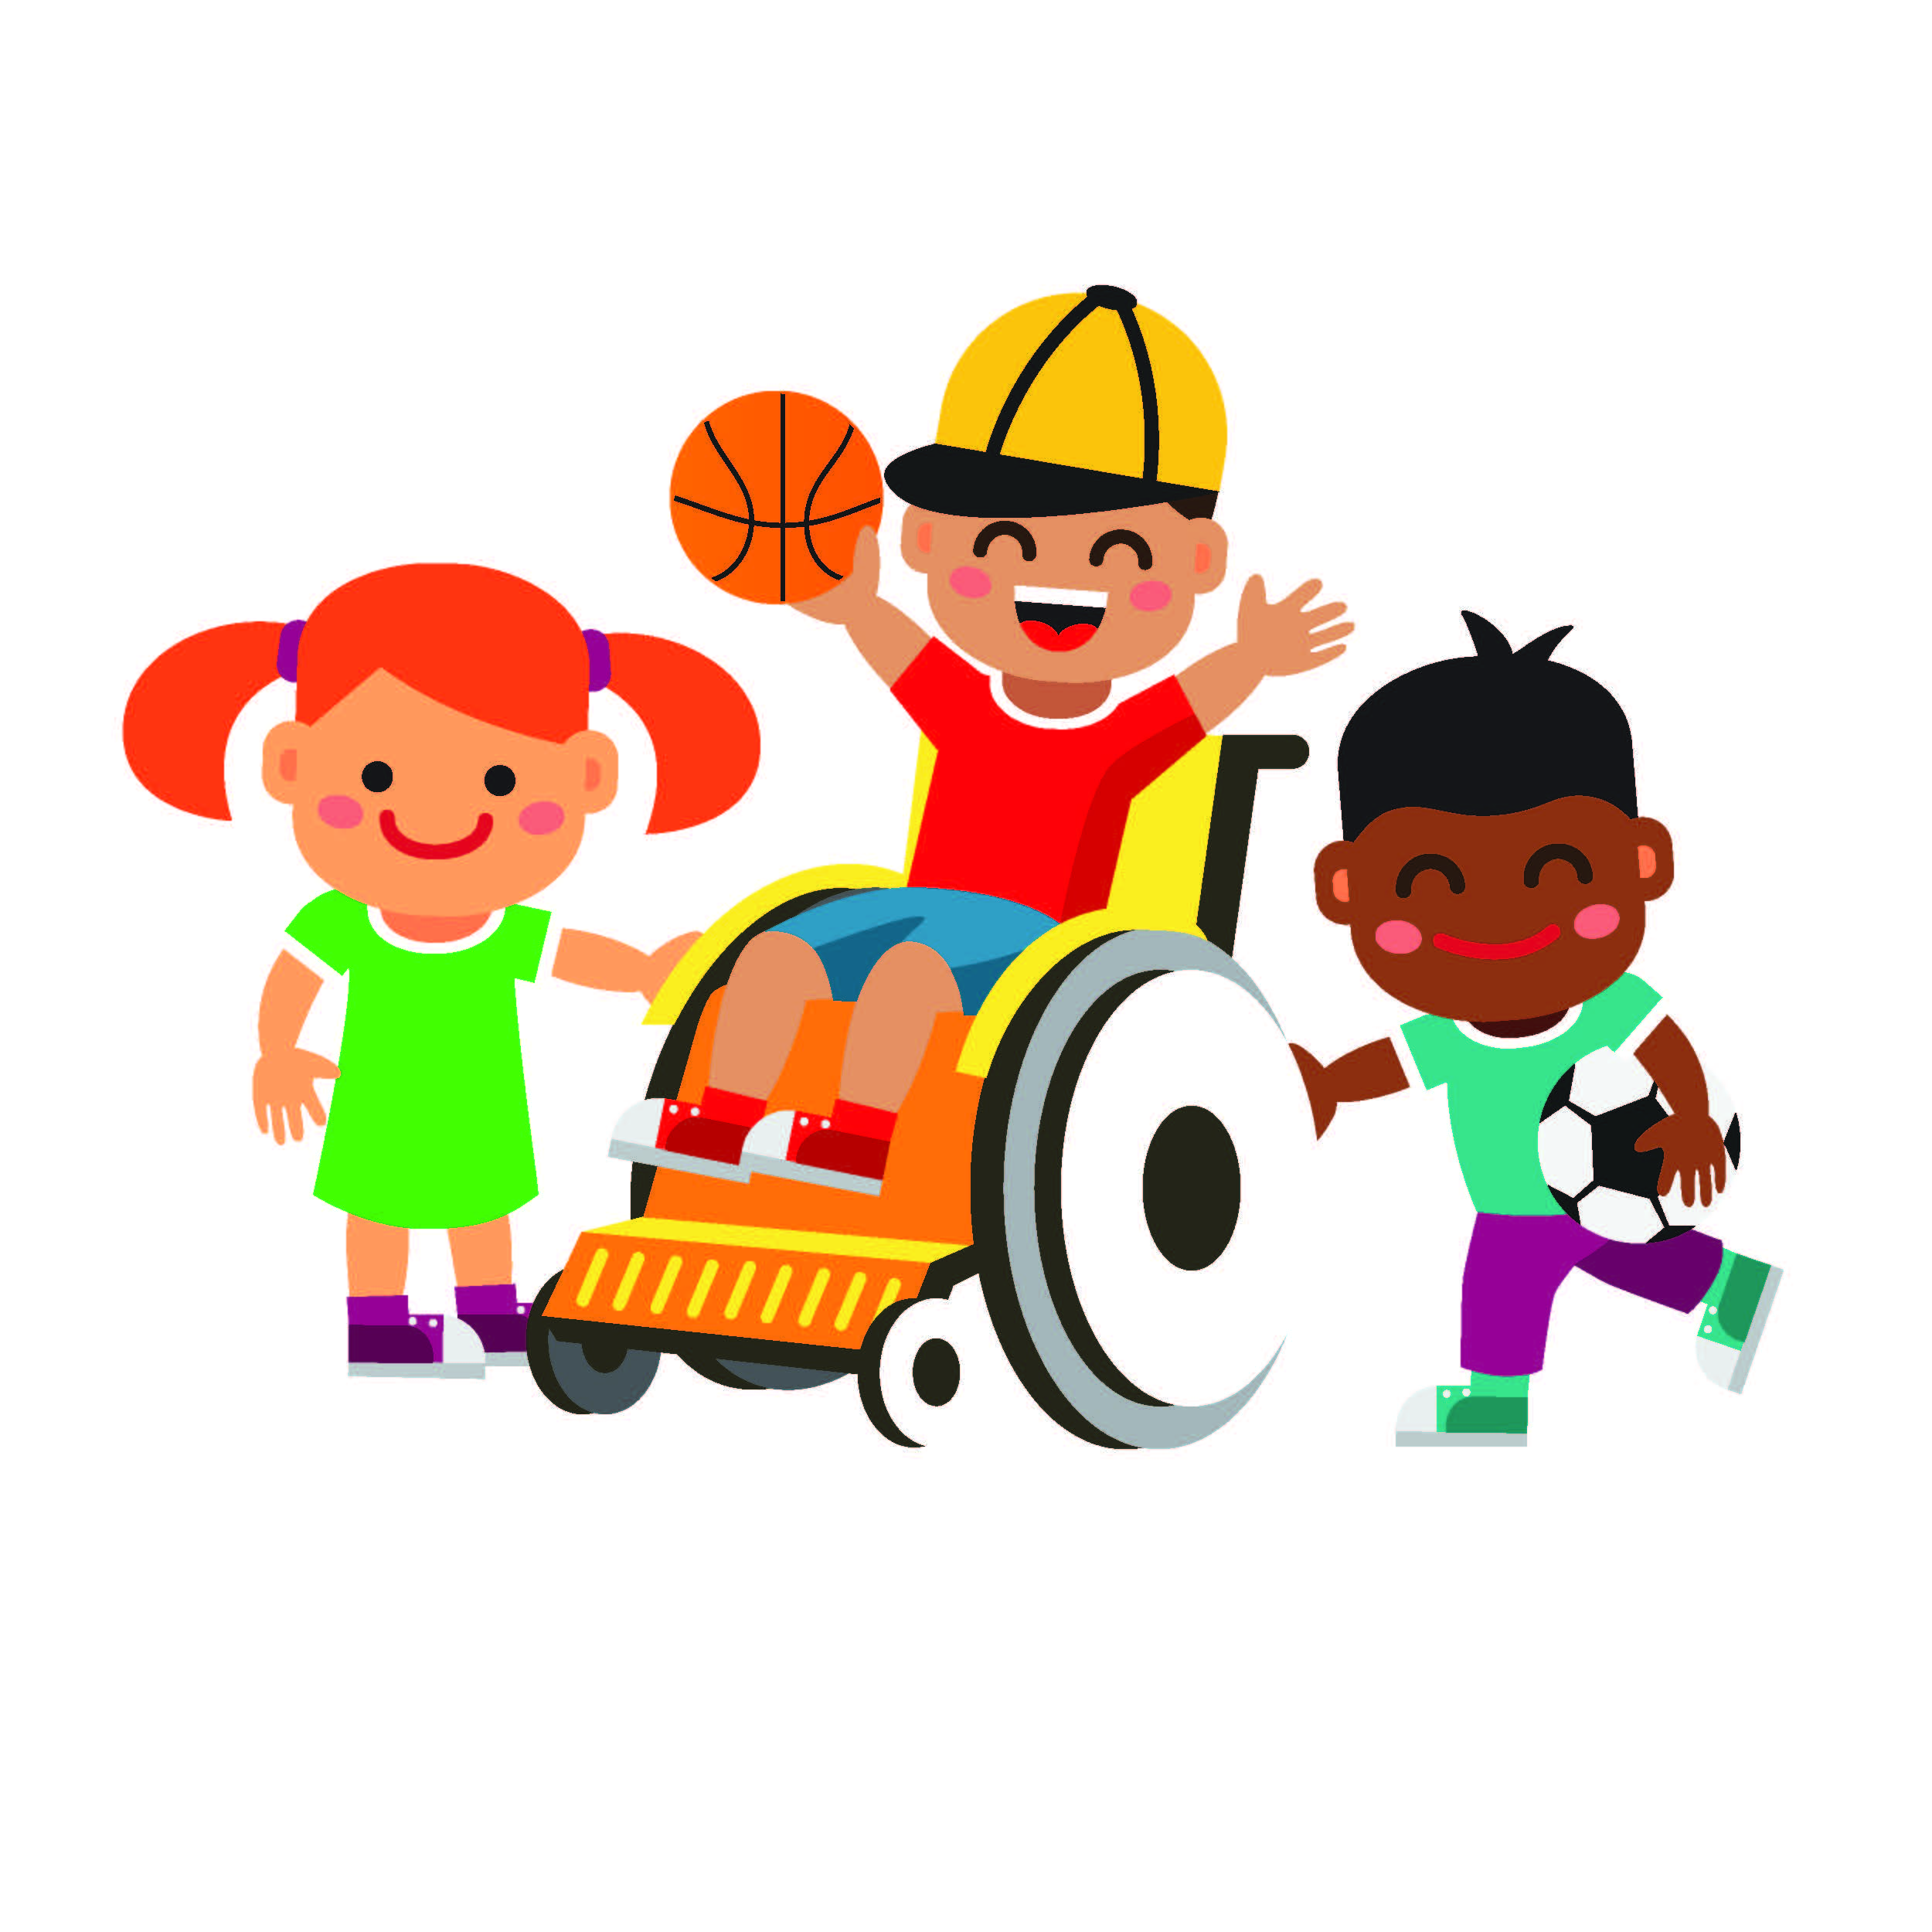 Daycare clipart childrens health. Healthy eating active living